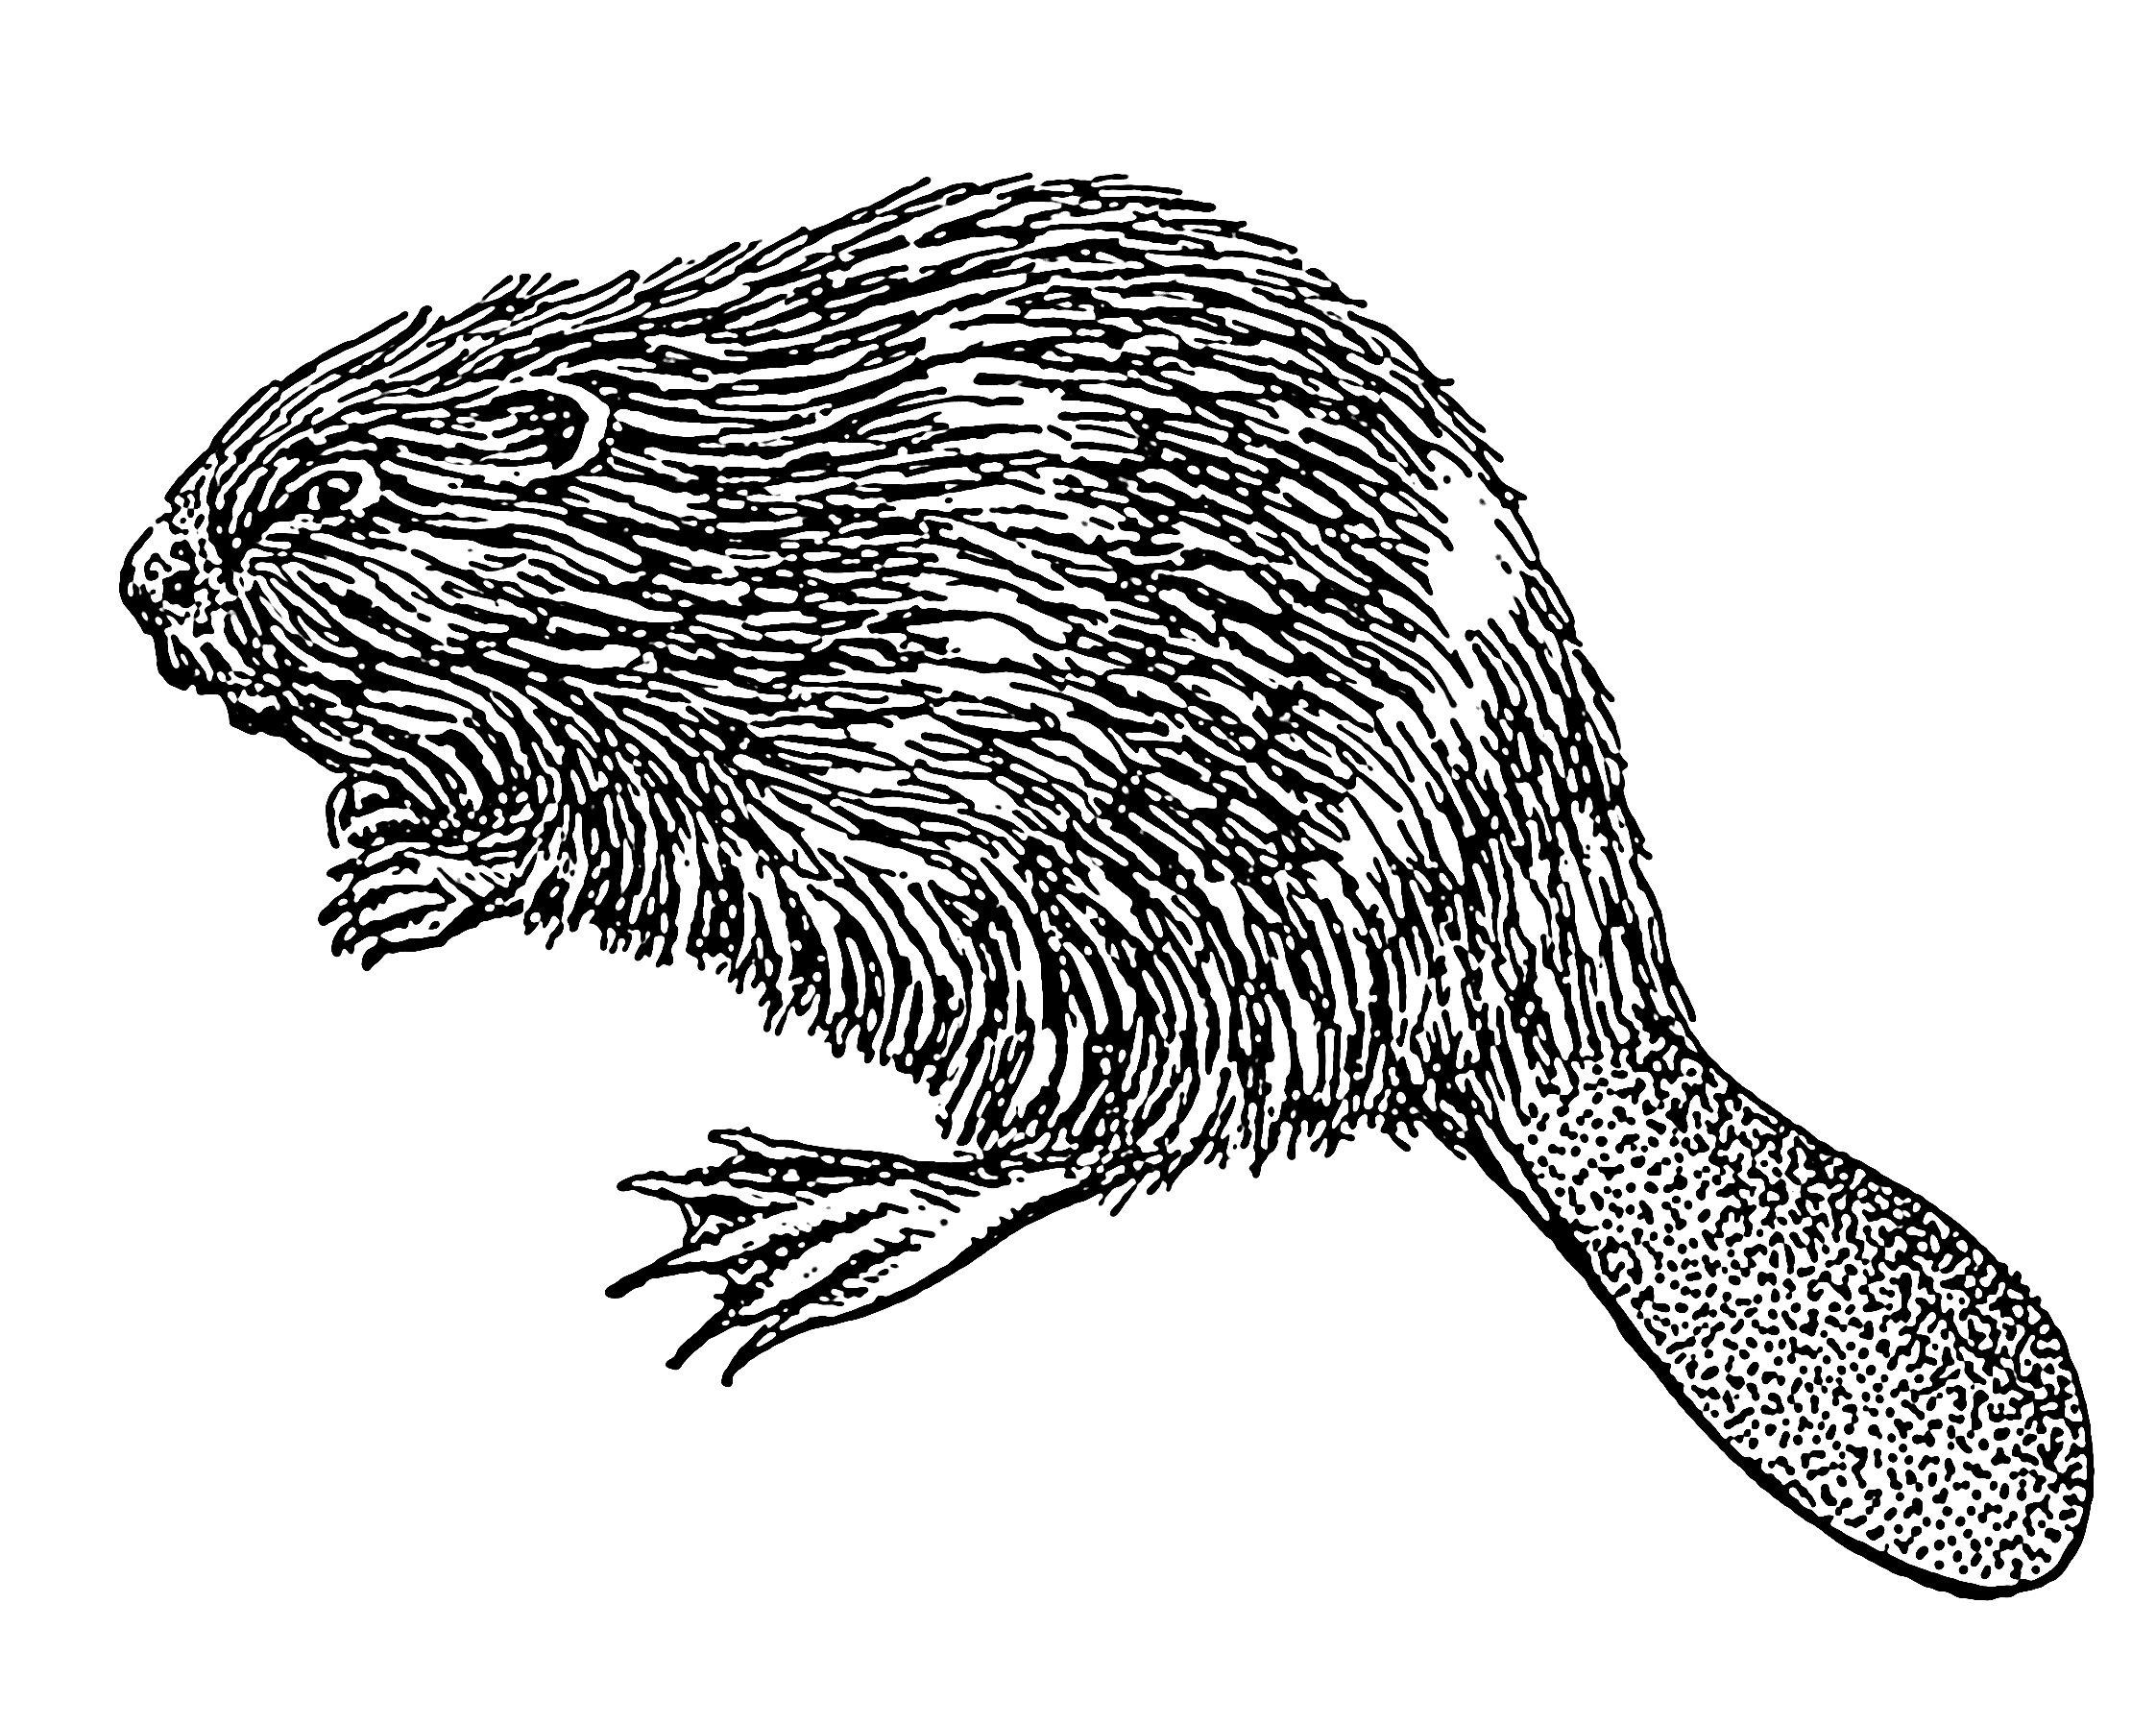 Muskrat drawing white. File beaver psf retouched